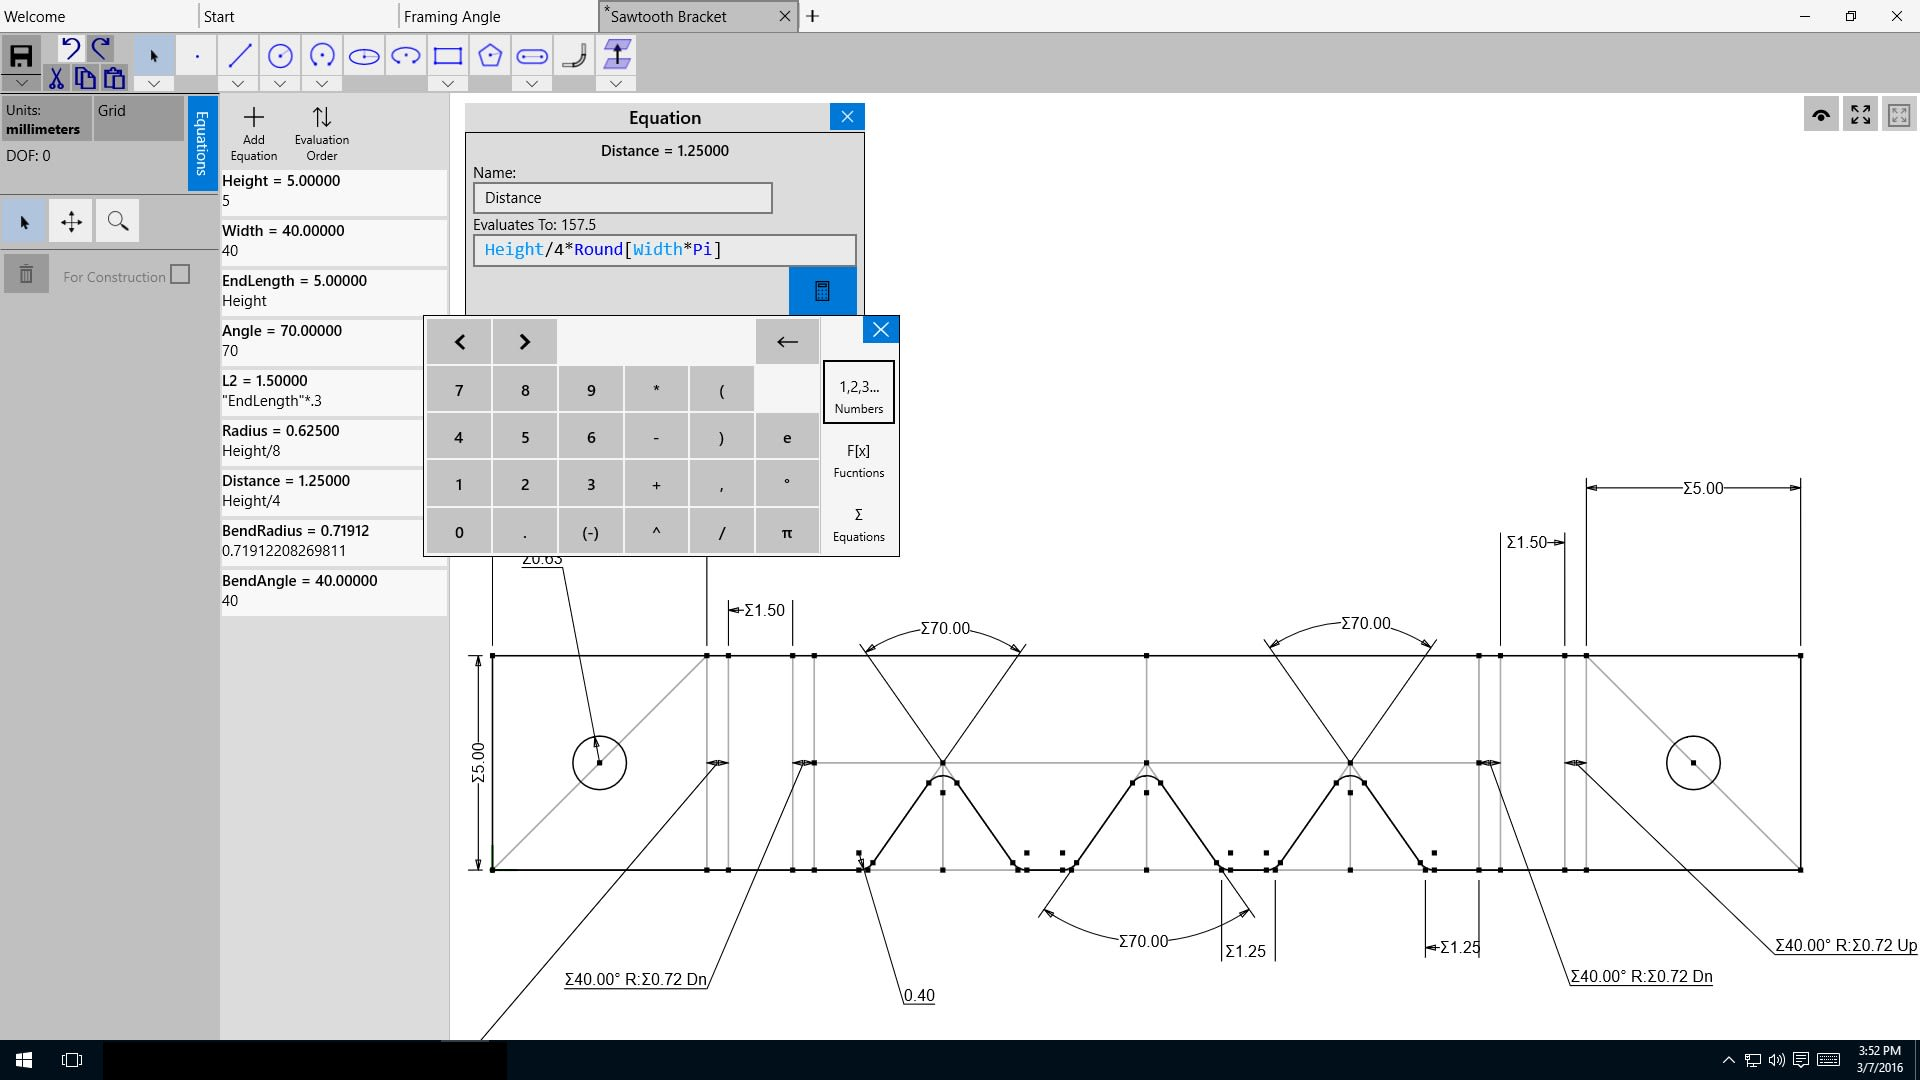 Wedge lightweight cad download for Windows drafting software